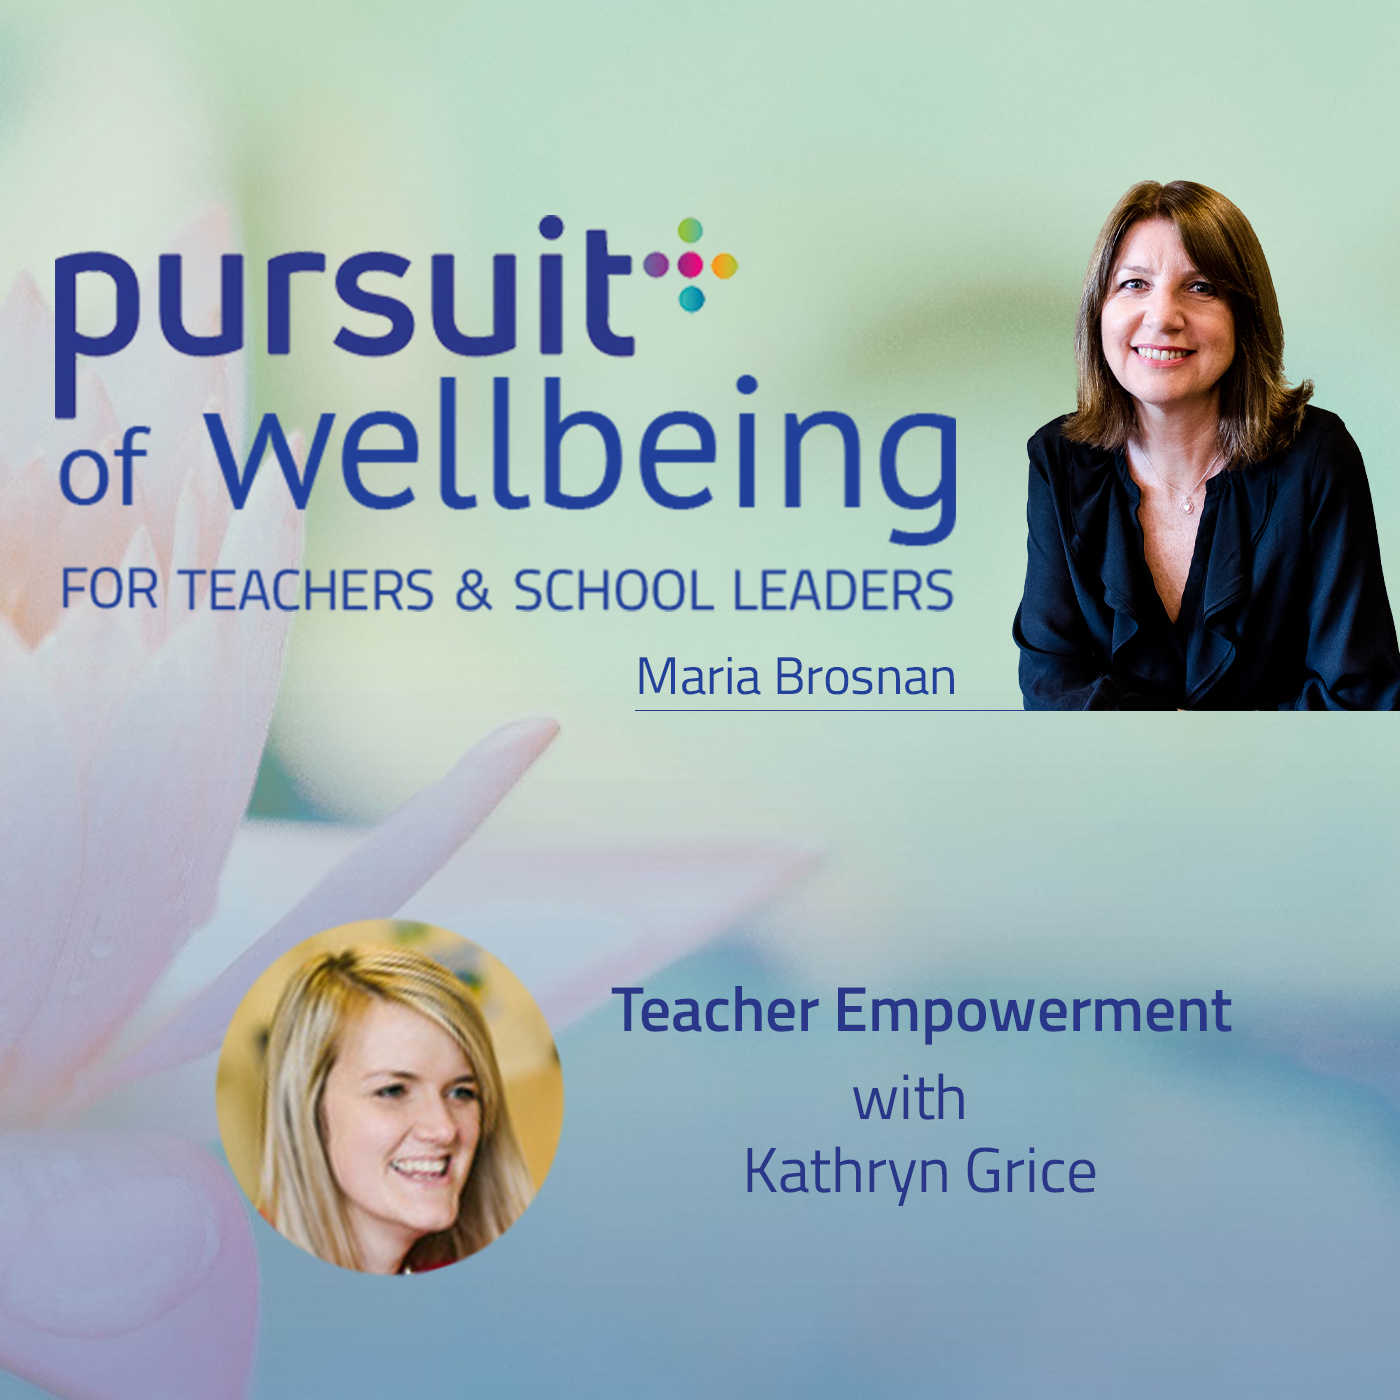 Teacher Empowerment with Kathryn Grice